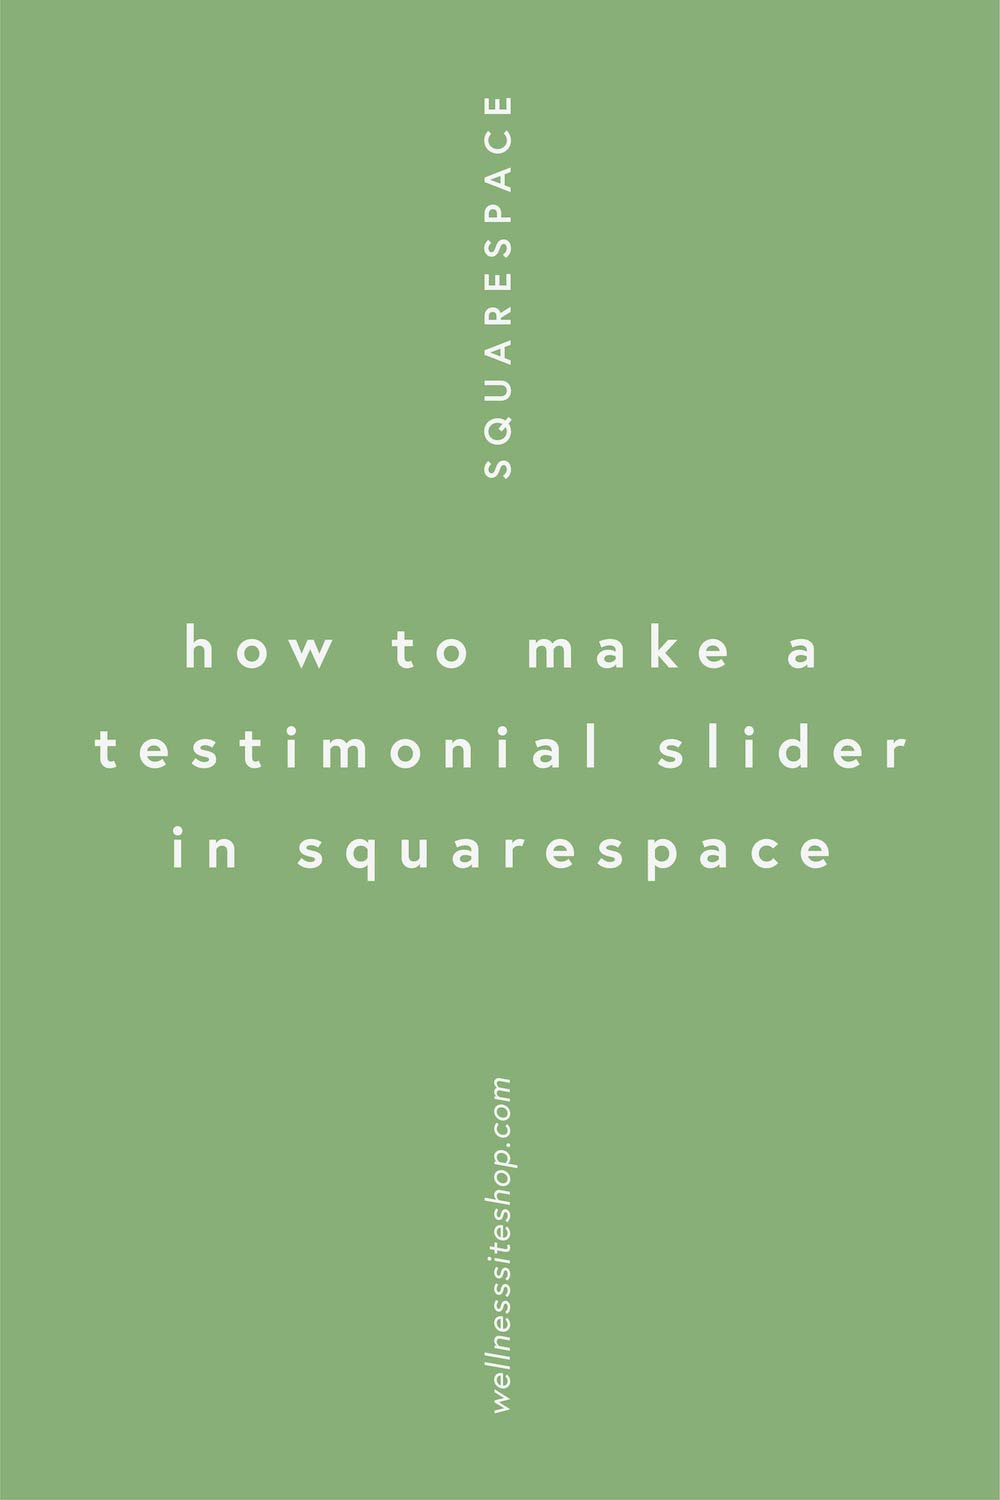 Howt to make a testimonial slider in squarespace *.jpg